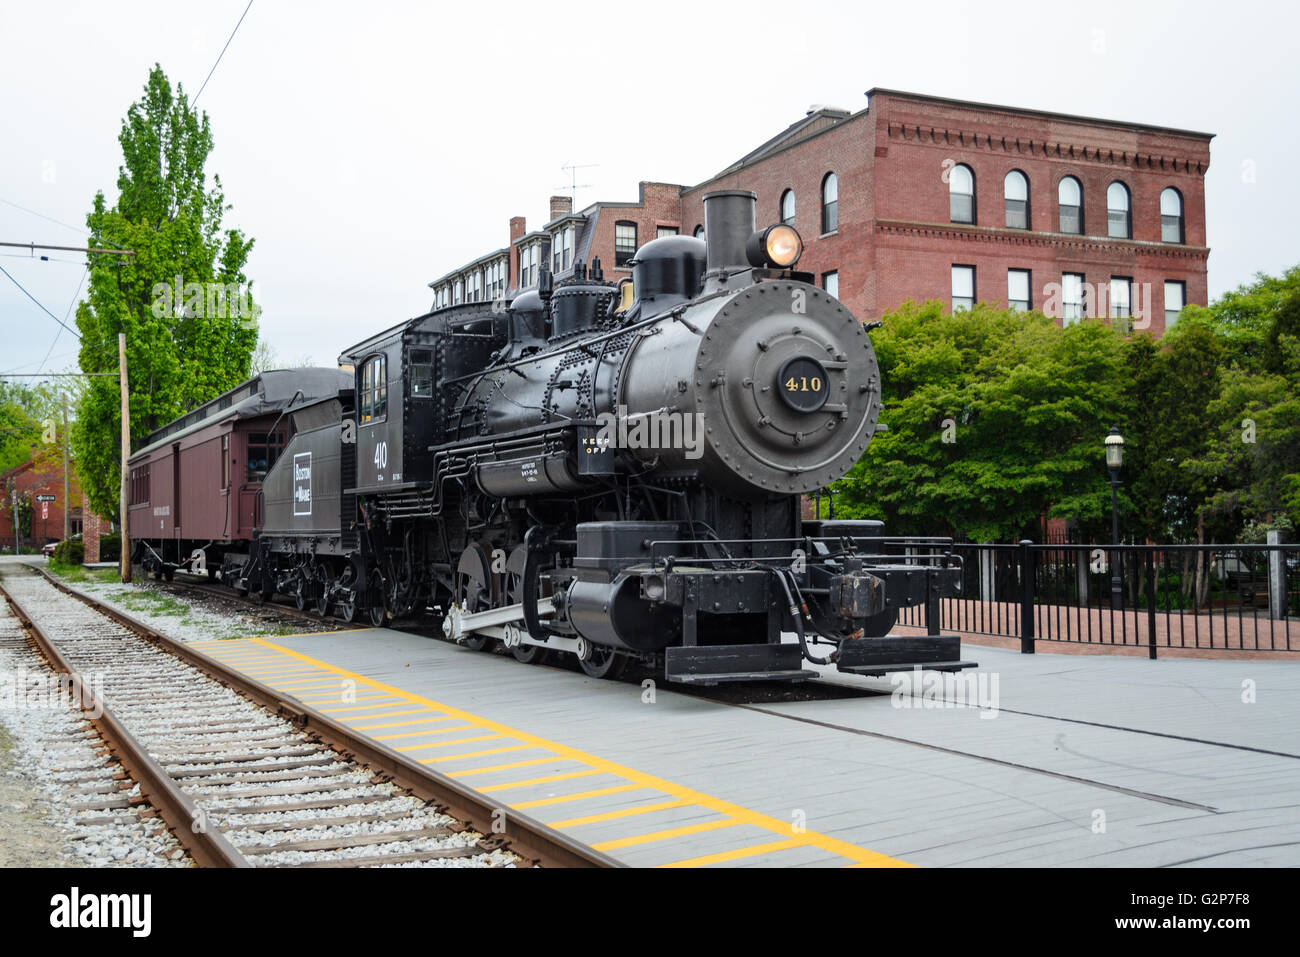 Lowell National Historical Park - Stock Image